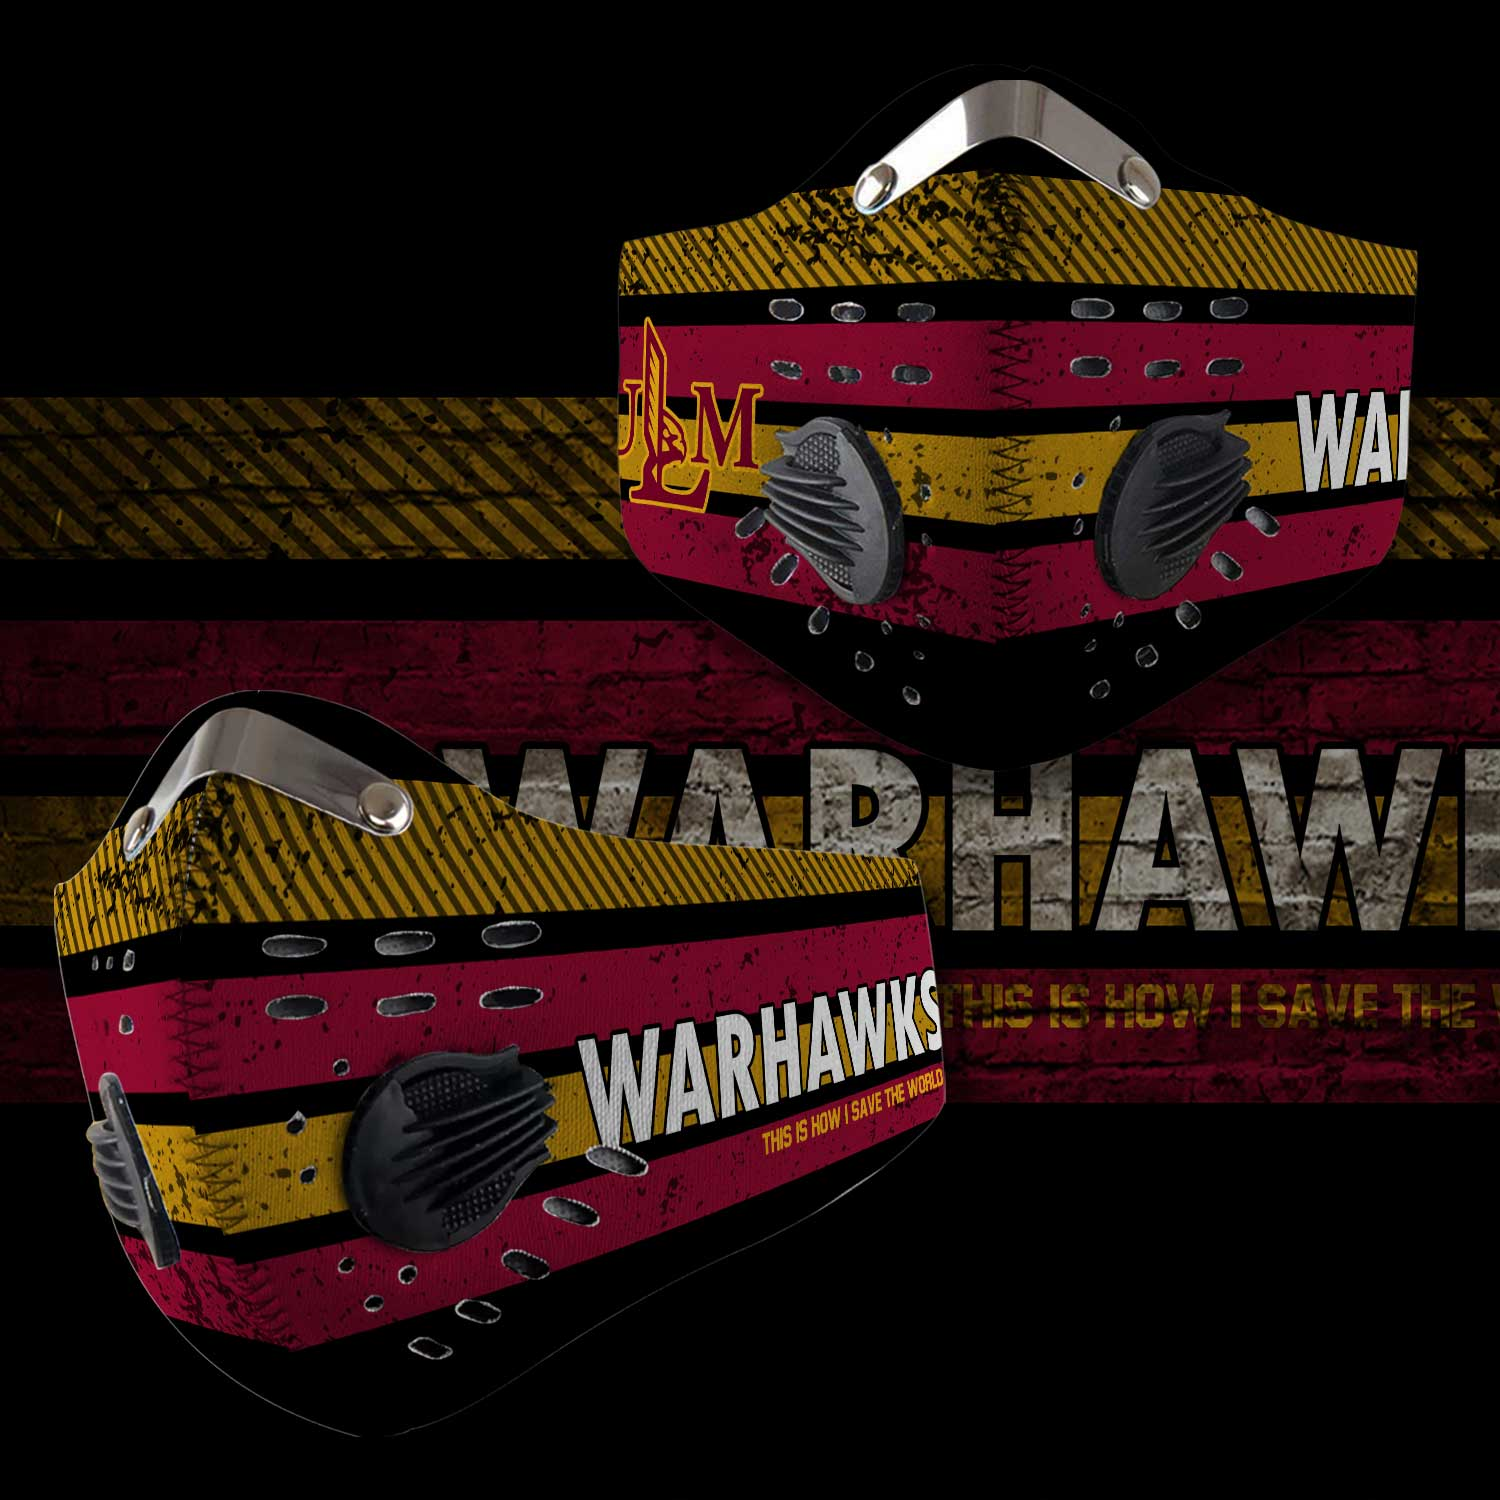 Louisiana monroe warhawks this is how i save the world face mask 1